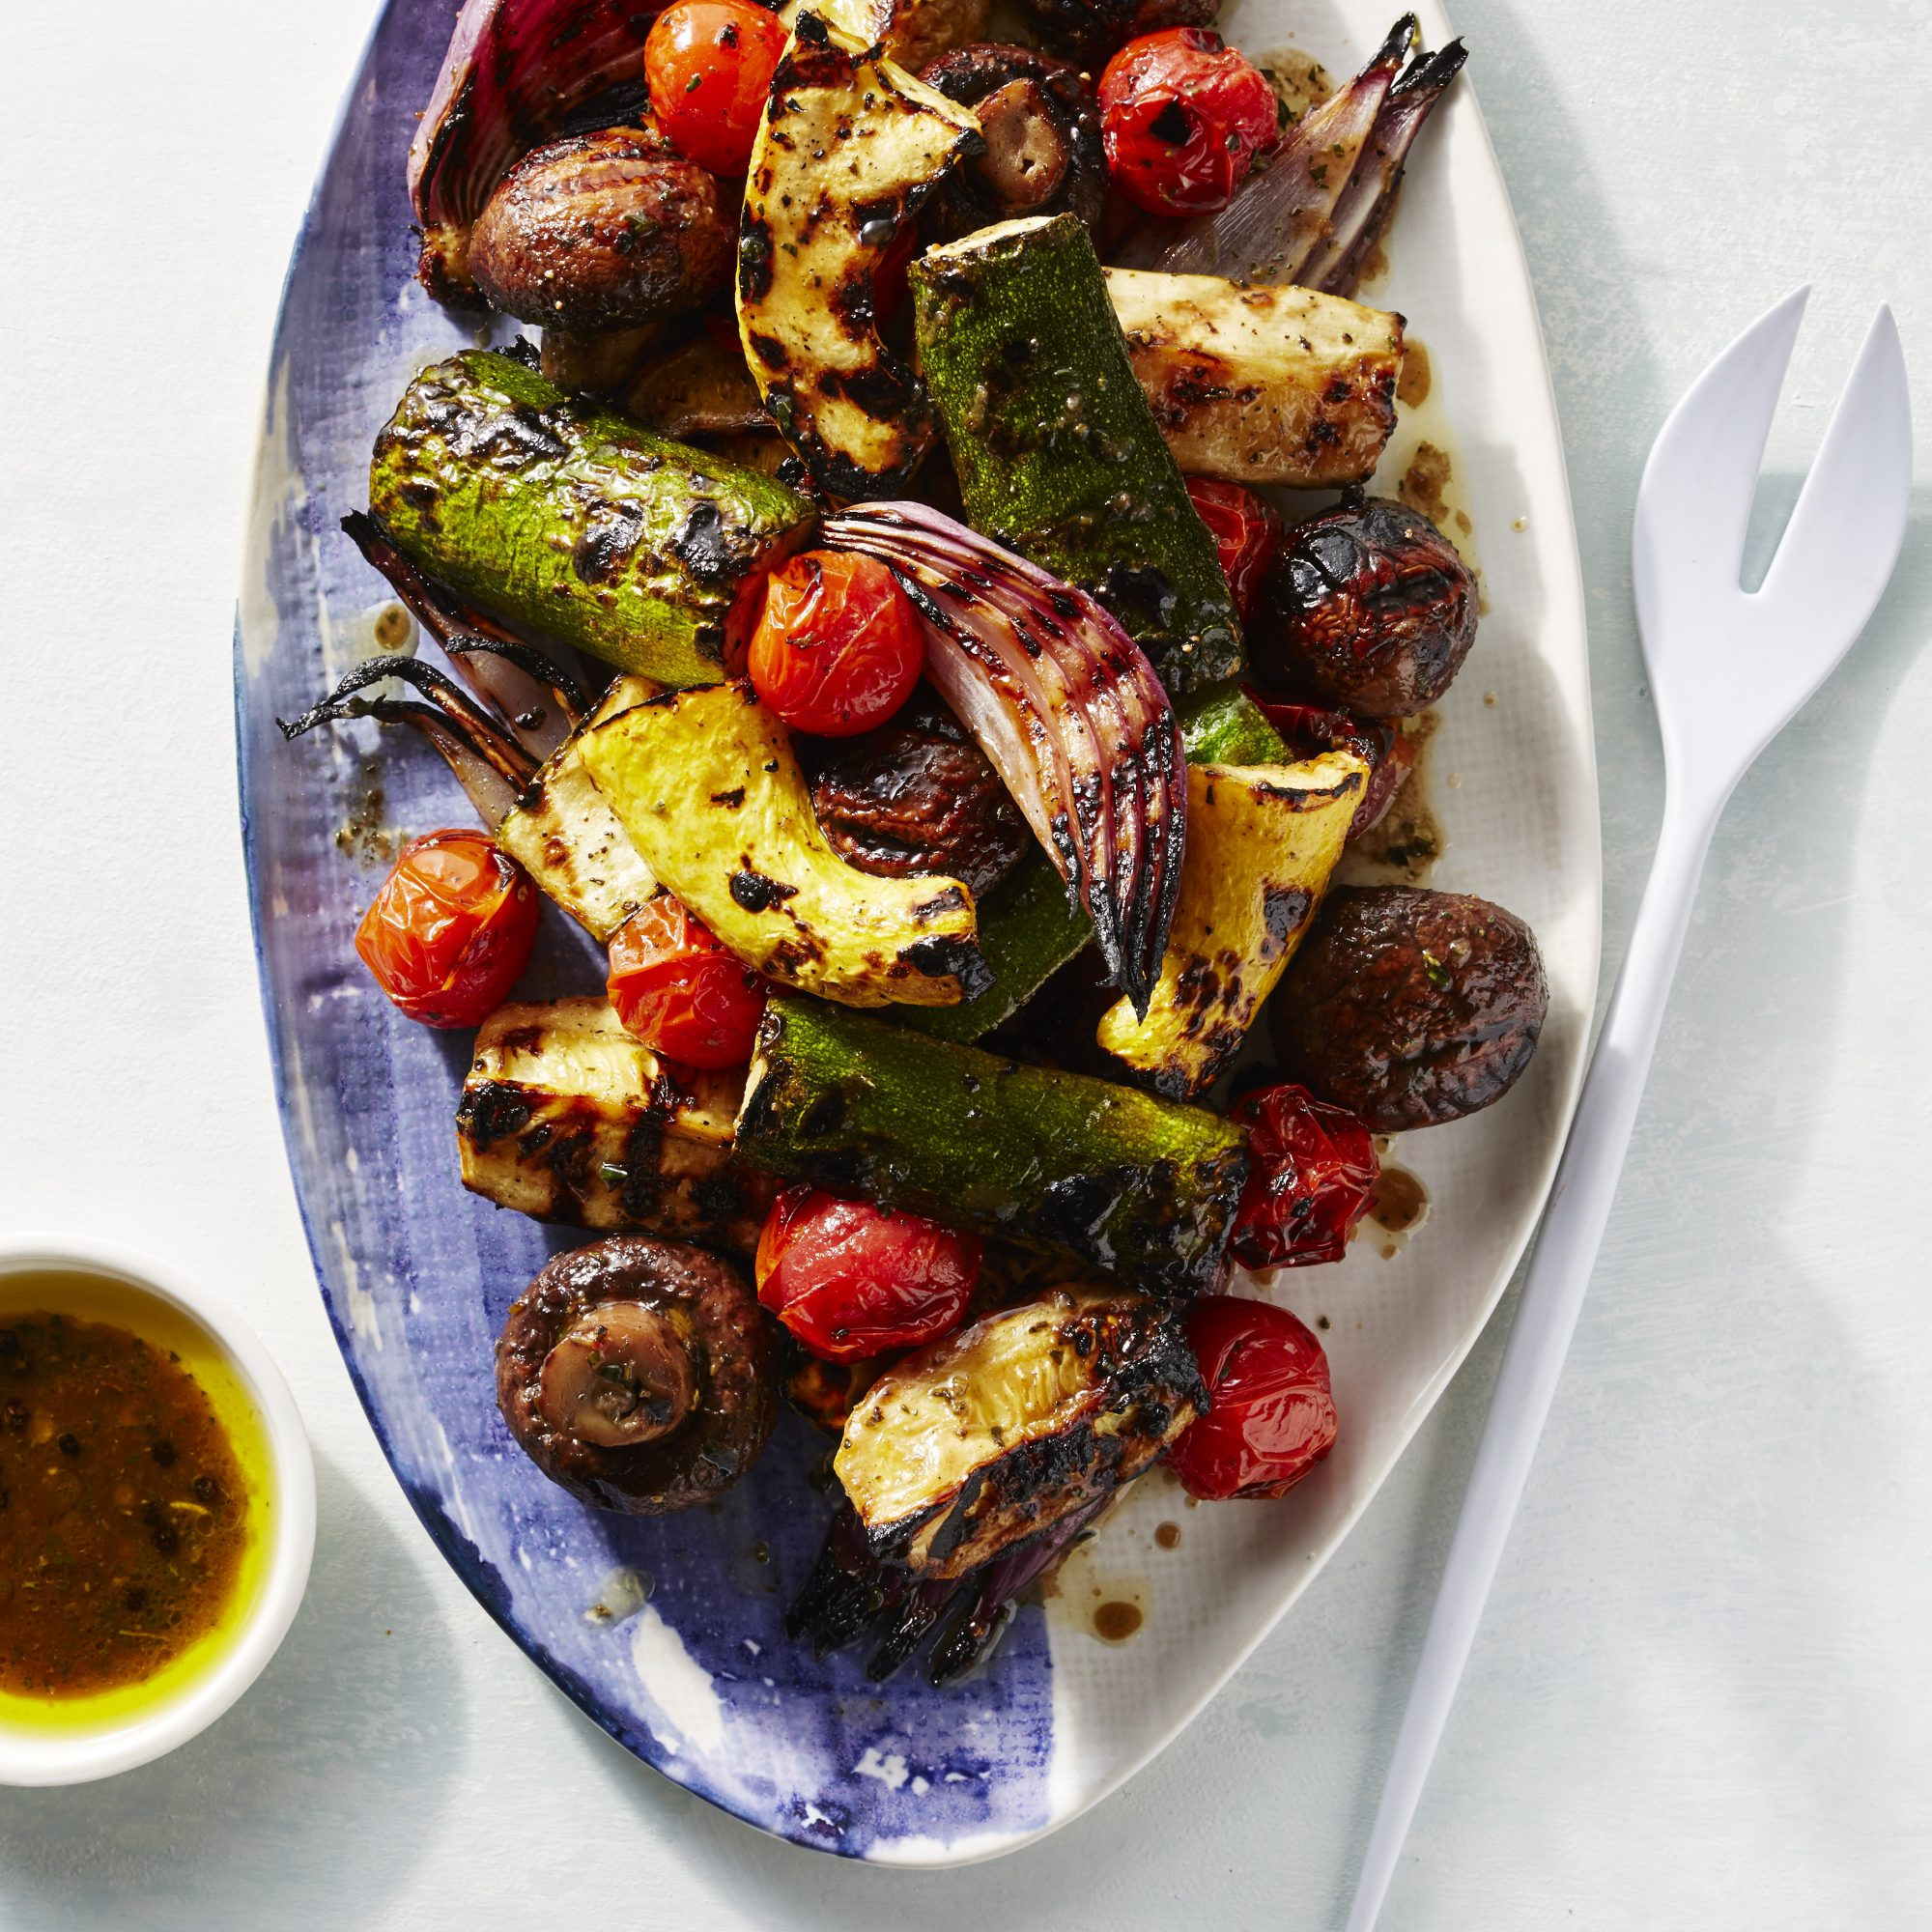 Ask Ina Garten: Marinated, Grilled Summer Vegetables Recipe